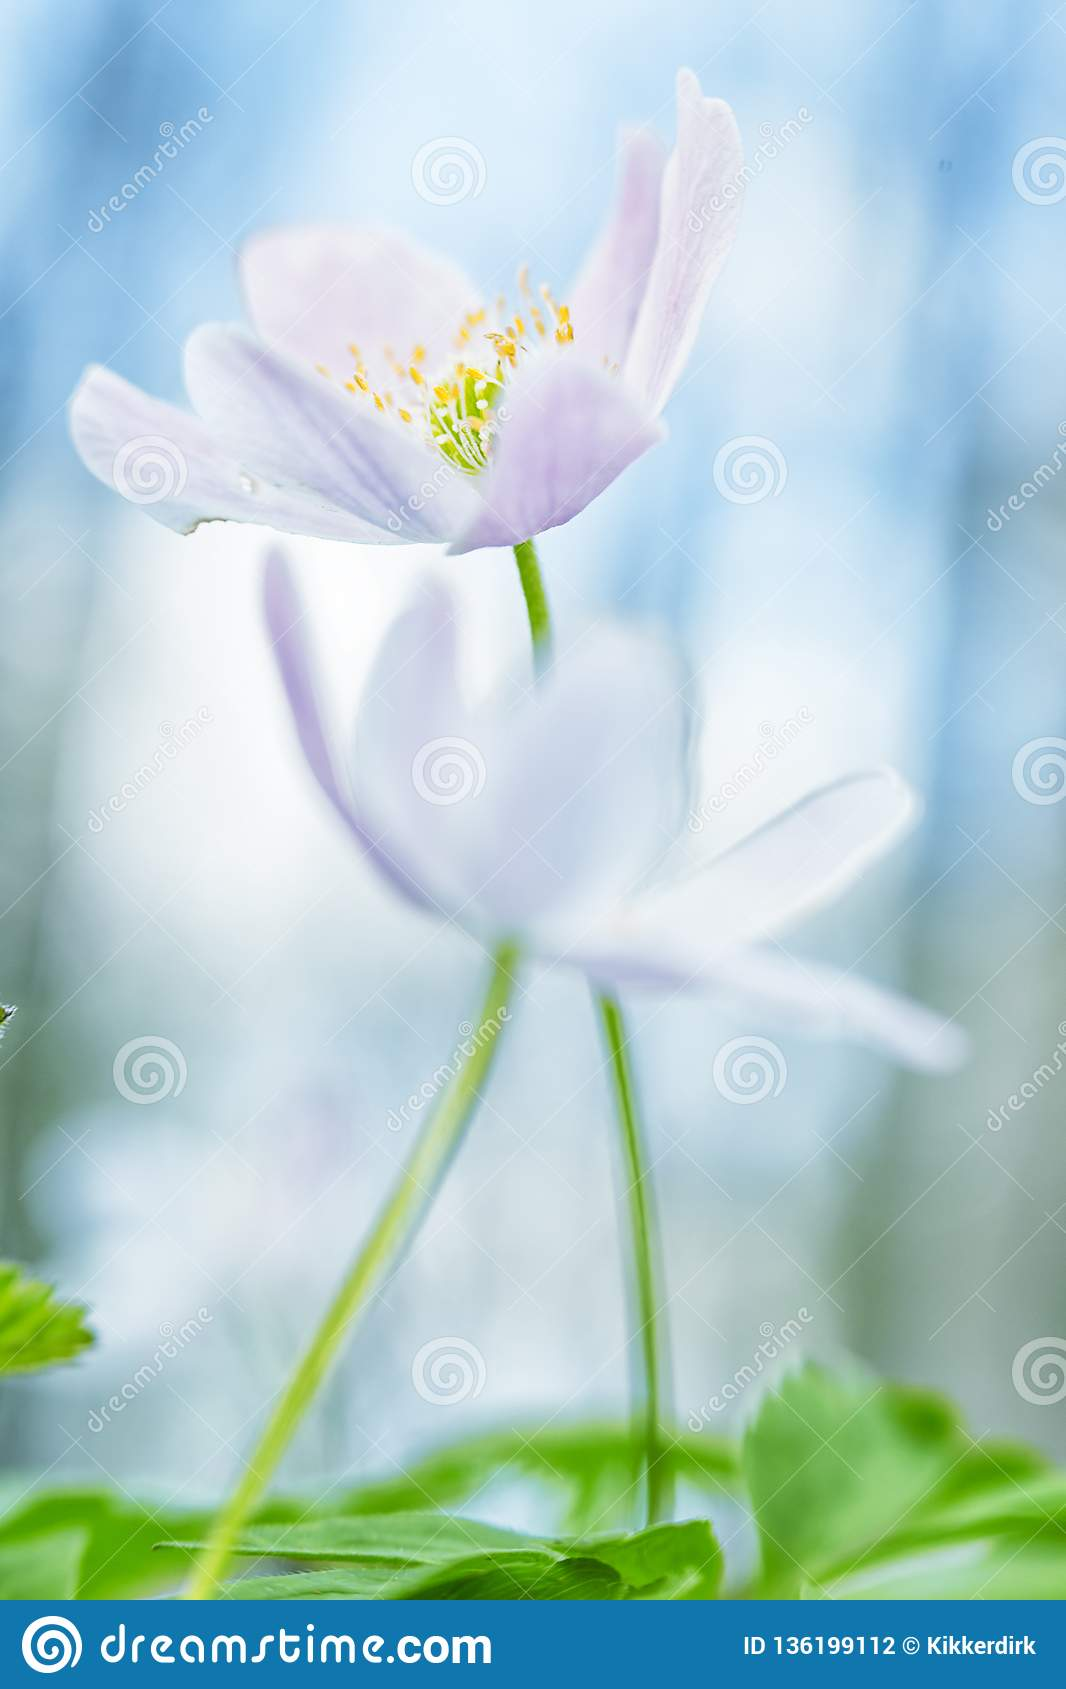 Wood anemone pair in love abstract